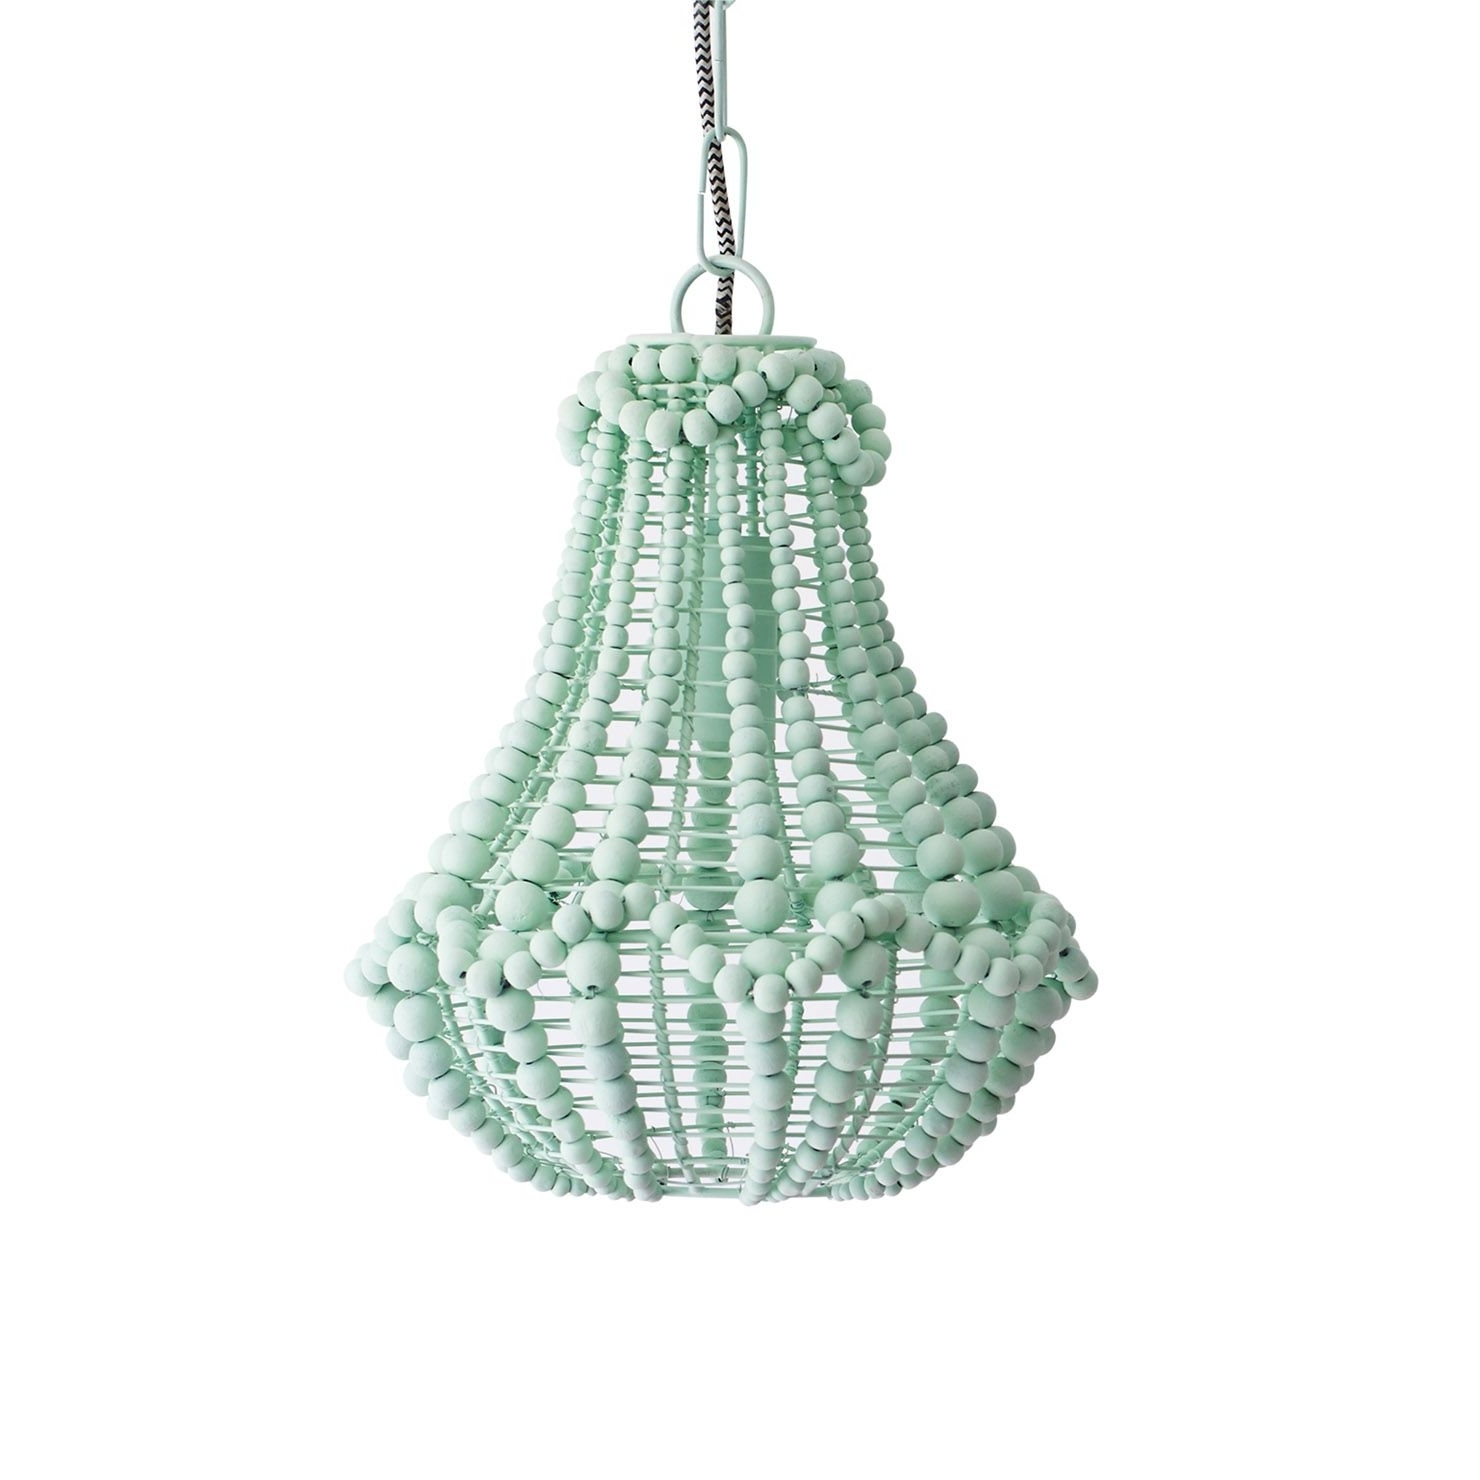 Lighting With Regard To Well Known Turquoise Wood Bead Chandeliers (View 11 of 20)